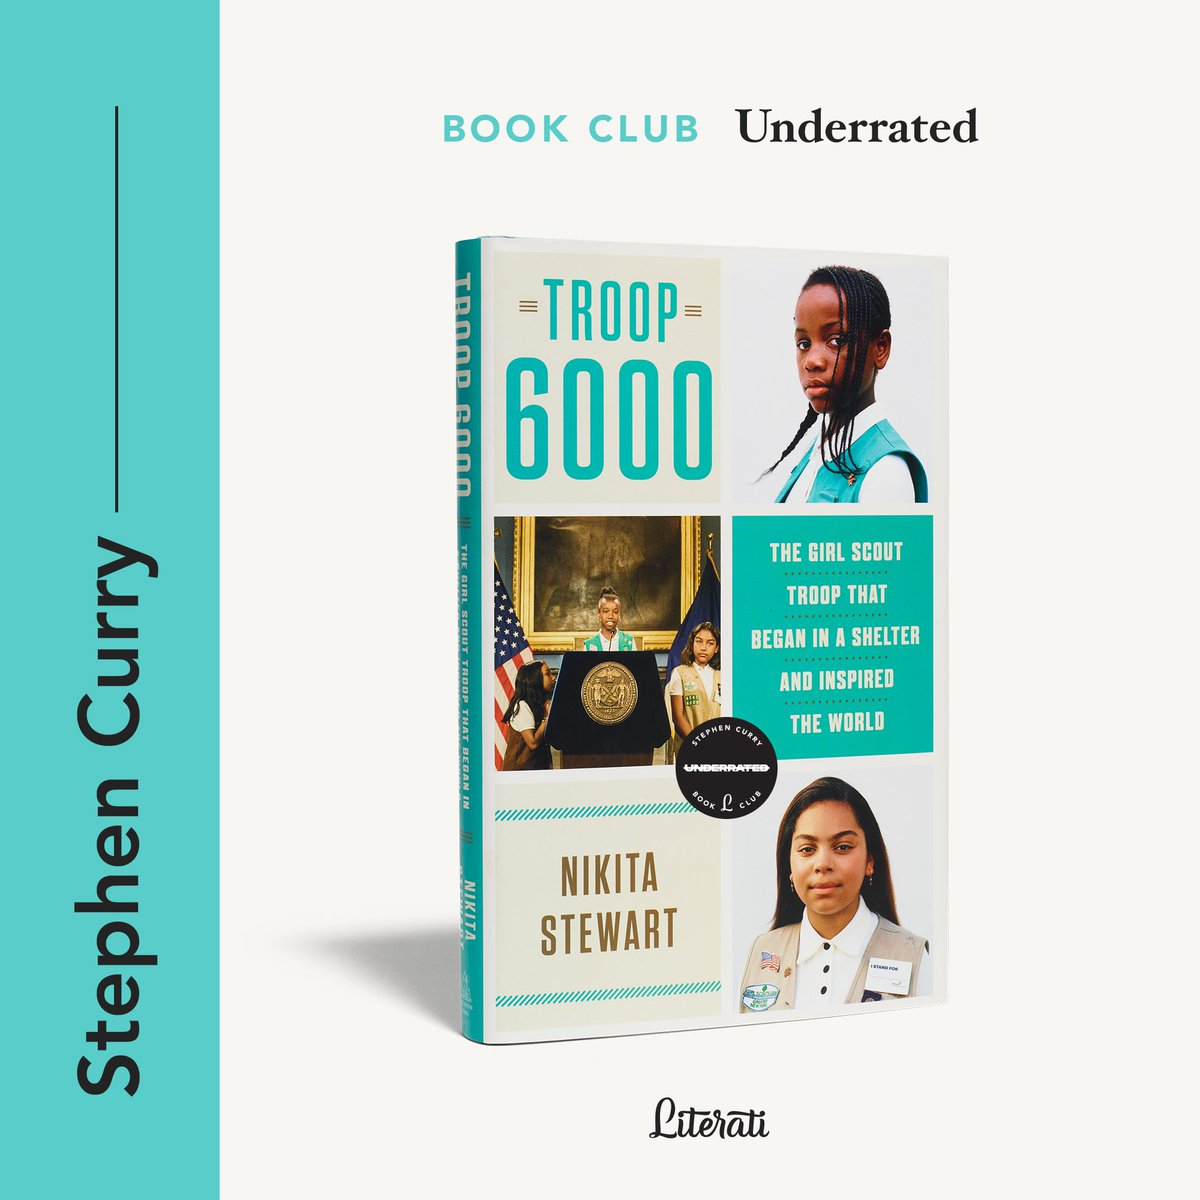 Excited to start 2021 with this one. January's Underrated book club selection ➡️ Troop 6000 by @kitastew.